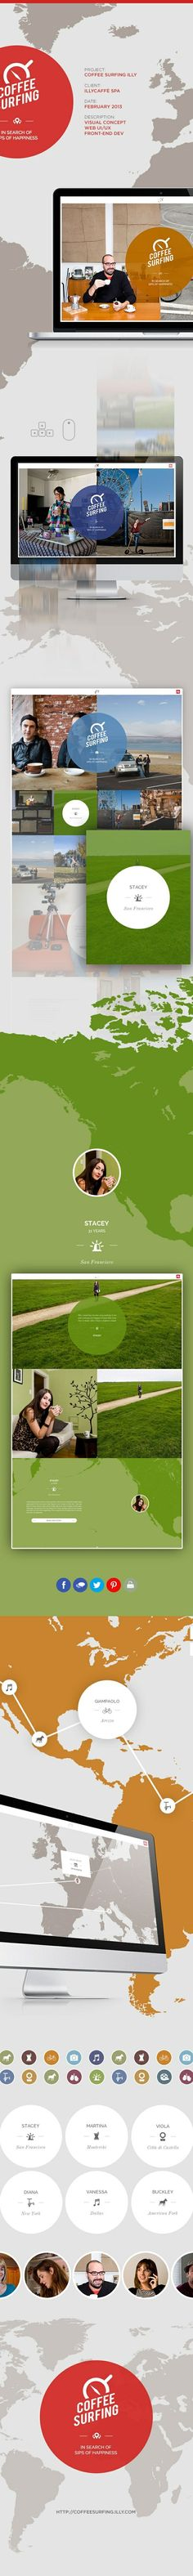 #Webtemplate #Computer #Green